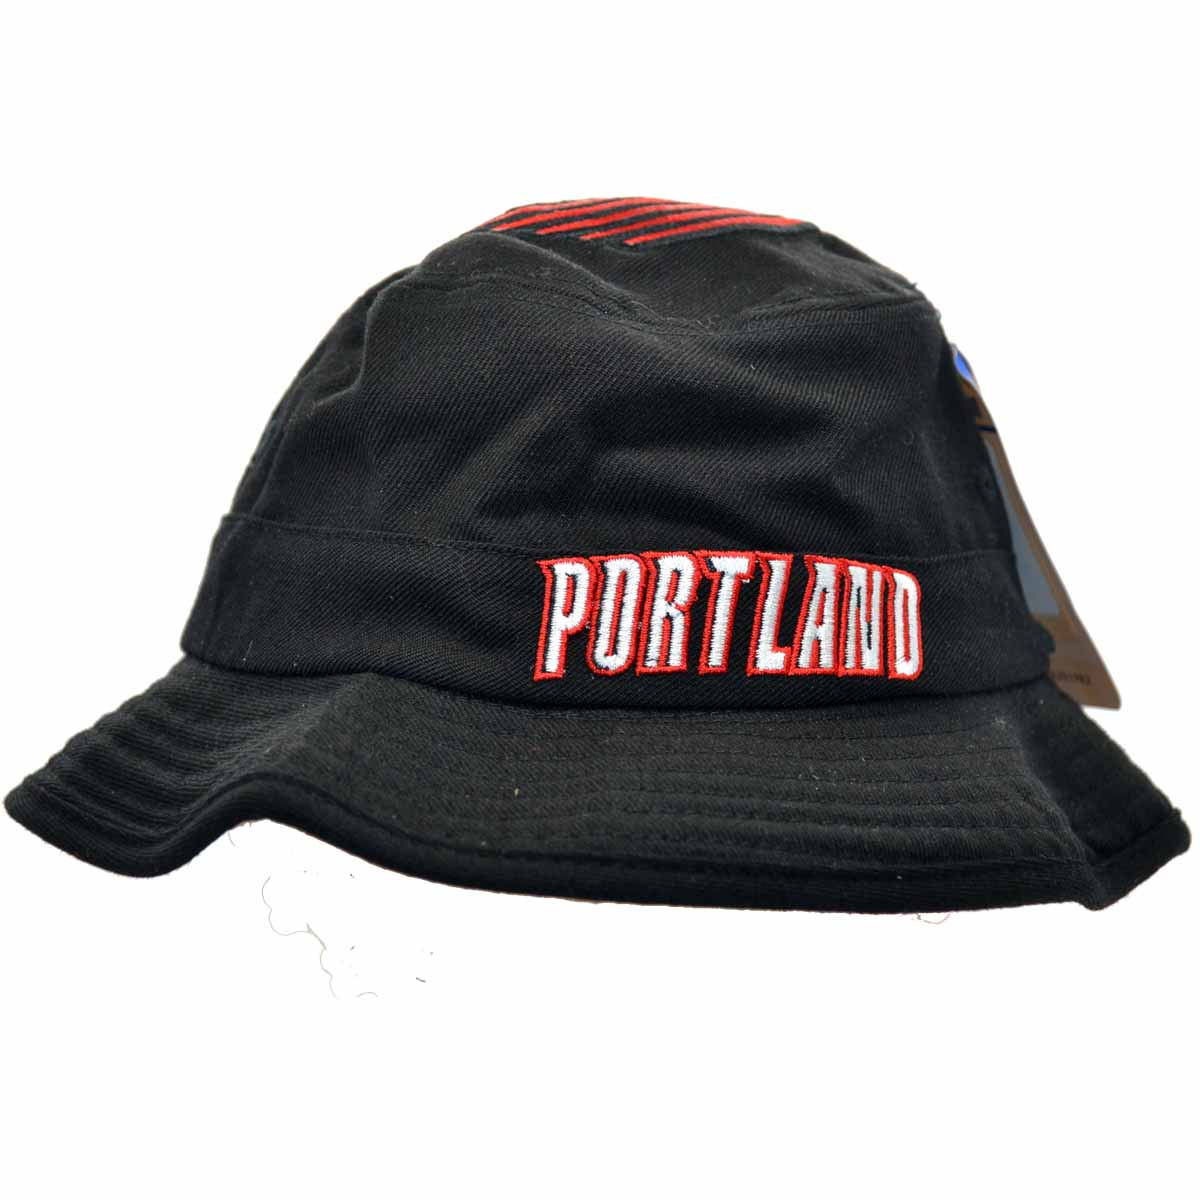 Details about Portland Trailblazers Adidas NBA Fashion Bucket Hat 0da061475c6